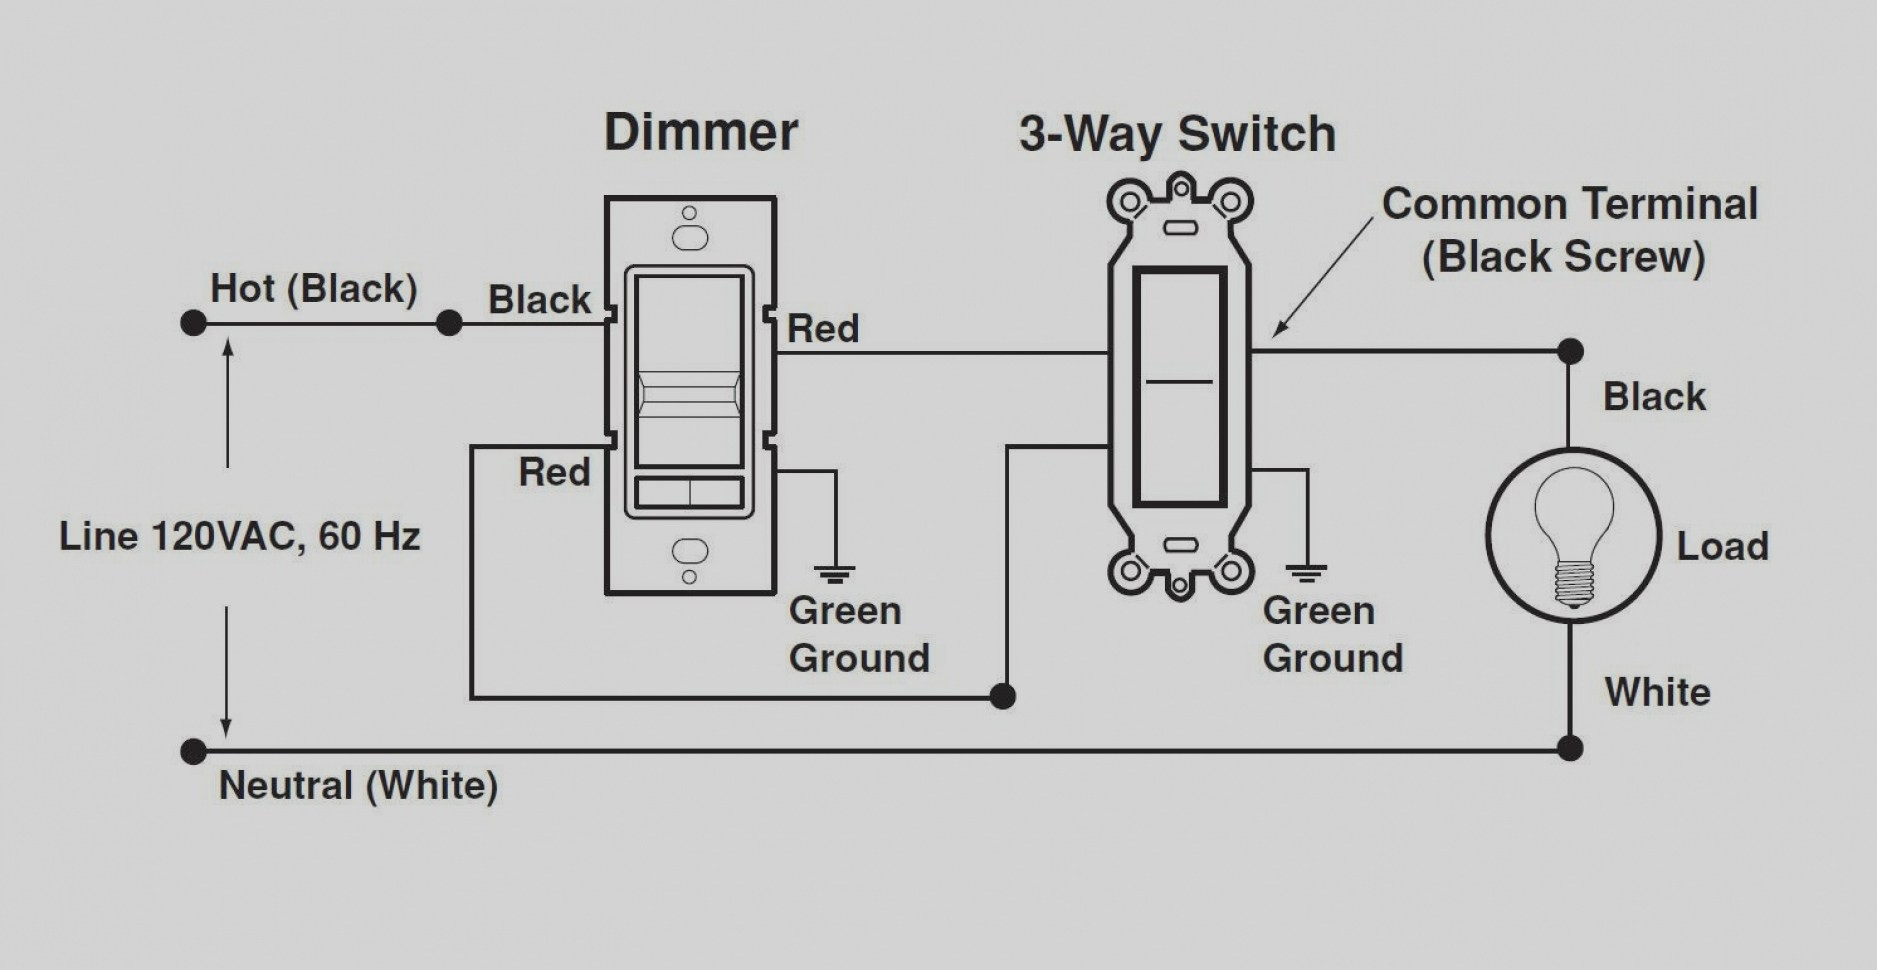 Pass Amp Seymour Wiring Diagrams | Wiring Diagram - Pass & Seymour Switches Wiring Diagram